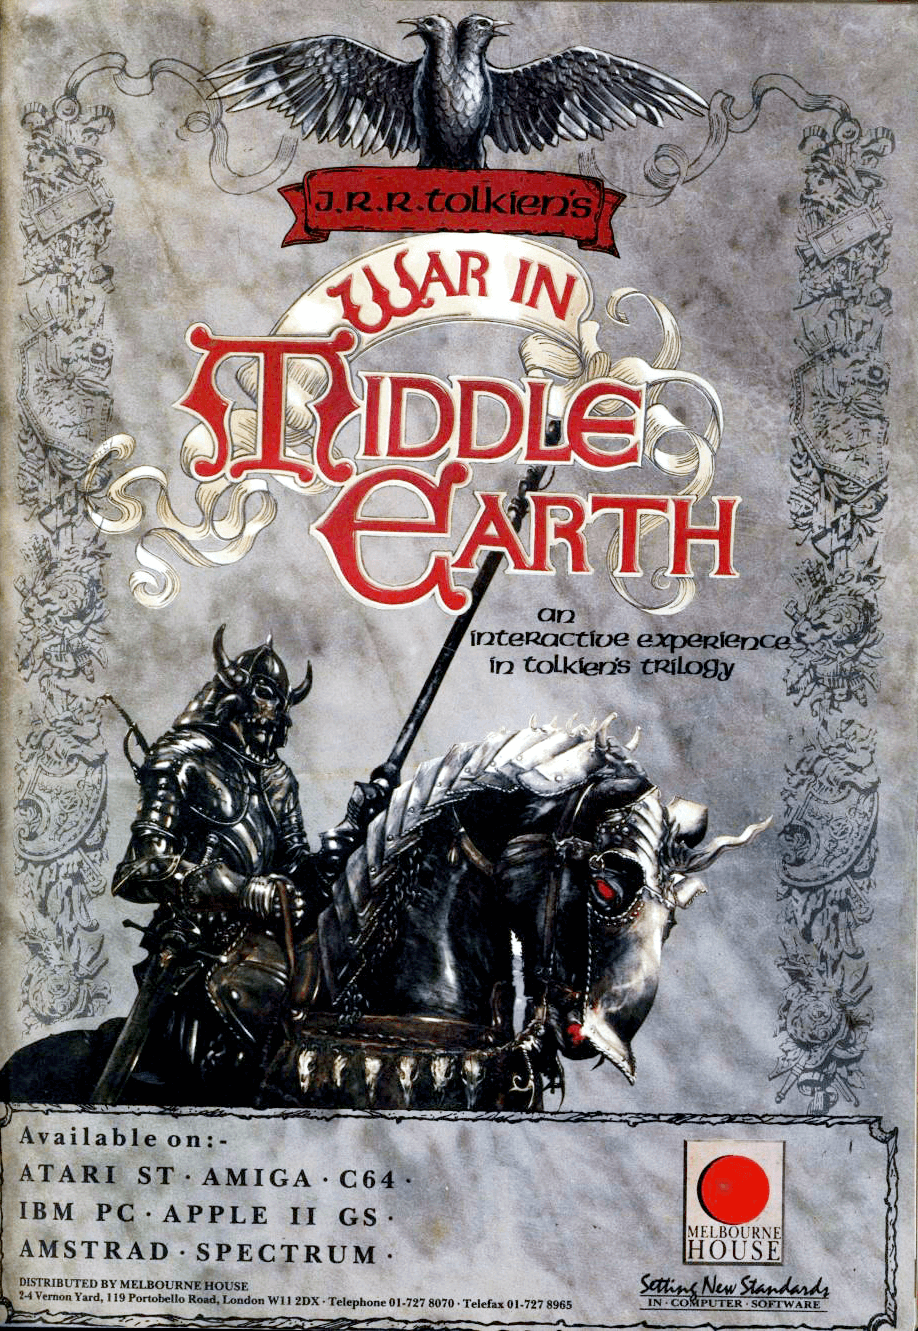 Image For Post   **Description**    *8-bit versions*  War in Middle Earth on 8-bit machines is a simpler version of the 16-bit game. It doesn't feature the questing and RPG aspects of the other title and is instead a pure strategy game.  The player controls the forces of good in the War of the Ring from J.R.R. Tolkien's The Lord of the Rings. The game begins with the Fellowship of the Ring just having formed in Rivendell and the hobbit Frodo Baggins carrying the One Ring. The ultimate goal of the game is to get the ring bearer to the cracks of Mount Doom to destroy the ring. The game is lost if the ring bearer is killed or corrupted by the ring's influence or if Sauron's forces capture the city of Minas Tirith.  *16-bit versions*  J.R.R. Tolkien's War in Middle Earth is the 16-bit game with additional adventuring features compared to the 8-bit version, loosely depicting the events of the One Ring from the Shire to Mt. Doom. The game starts with the three hobbits: Frodo, Sam, and Pippin surrounded by nine individual units of Nazgul near the Shire. Although the first task is to travel to Rivendell, the player is free to decide how heroes and armies progress, despite the in-game conventional storyline.  Victory is attained by successfully sending the ring bearer to Mt. Doom - how this accomplished is completely up to the player. Additionally, any hero including Frodo may die during combat.   If the ring bearer dies during combat, a new ring bearer (if they survive the encounter) will be appointed to carry the One Ring. If the enemy gains possession of the One Ring is taken by the enemy, they will attempt to reach Barad-Dur, Sauron's fortress in the heart of Mordor, which will result in the player's defeat. The player will also lose if the enemy manages to seize three major allied citadels.